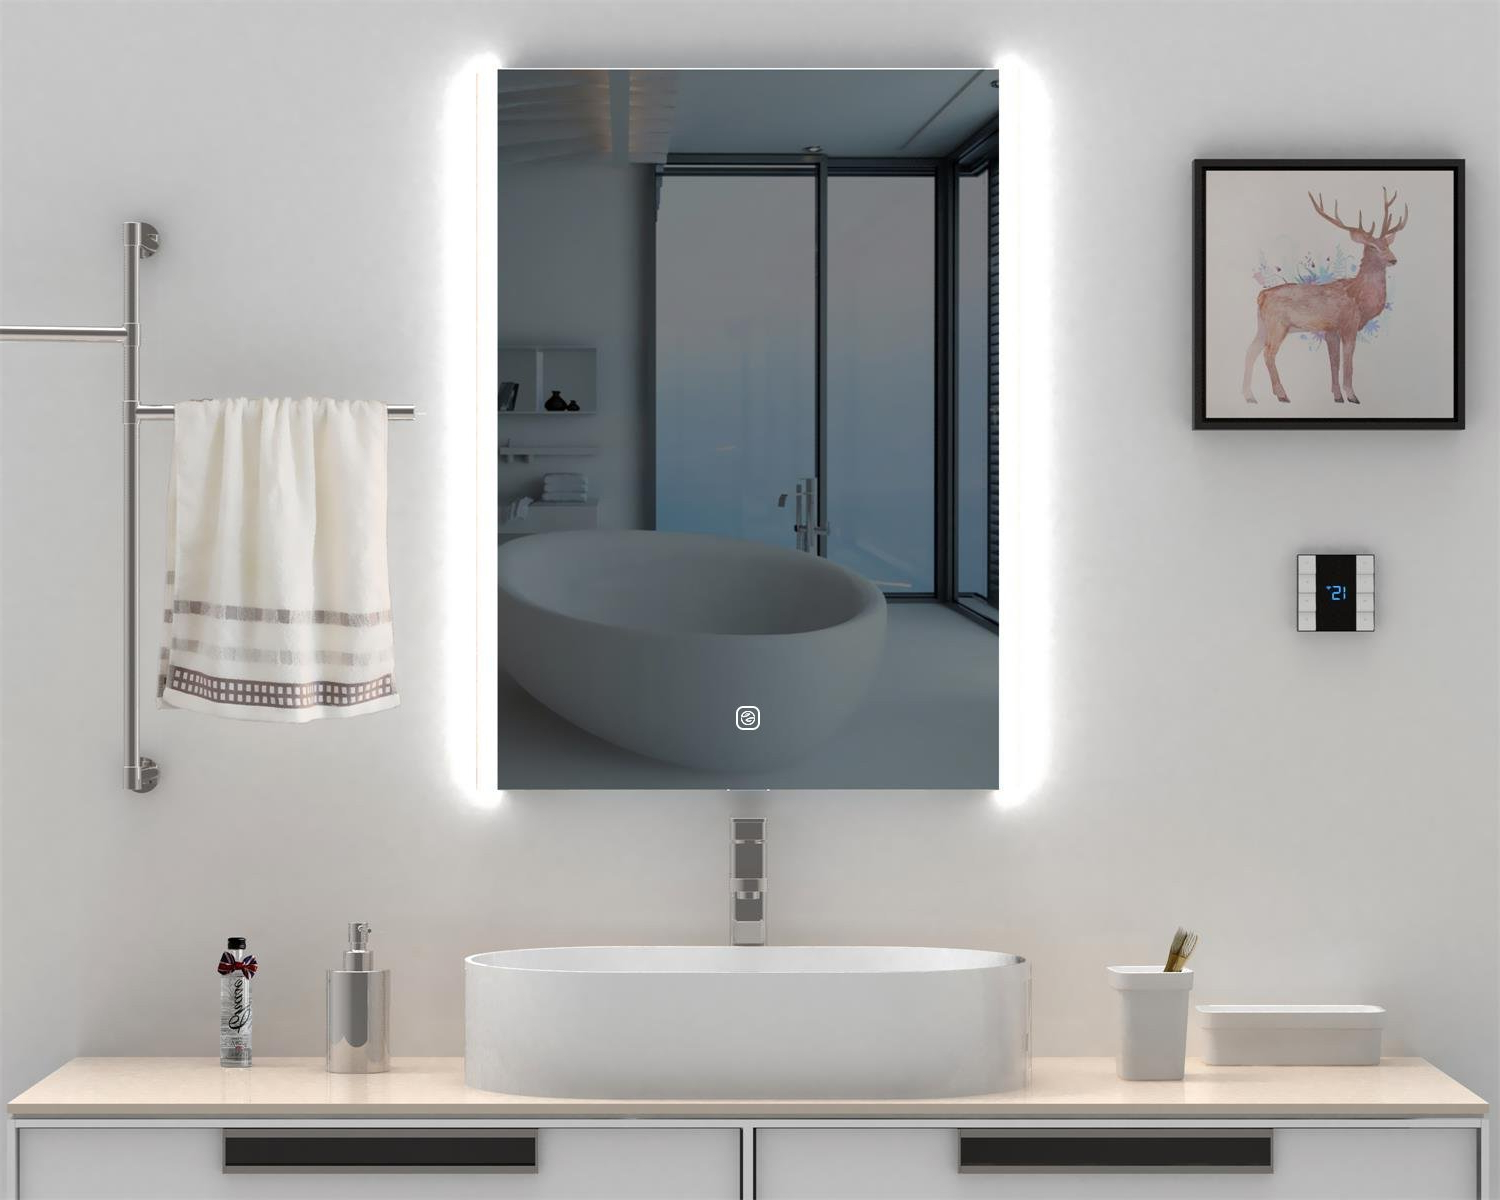 """Lighted Vanity Wall Mirrors Within Popular Heynemo 32""""x24"""" Bathroom Led Lighted Vanity Mirror Wall Mounted Makeup  Mirror, Led Lights Vanity Dimmer Touch Switch Waterproof Illuminated Mirror  For (View 13 of 20)"""